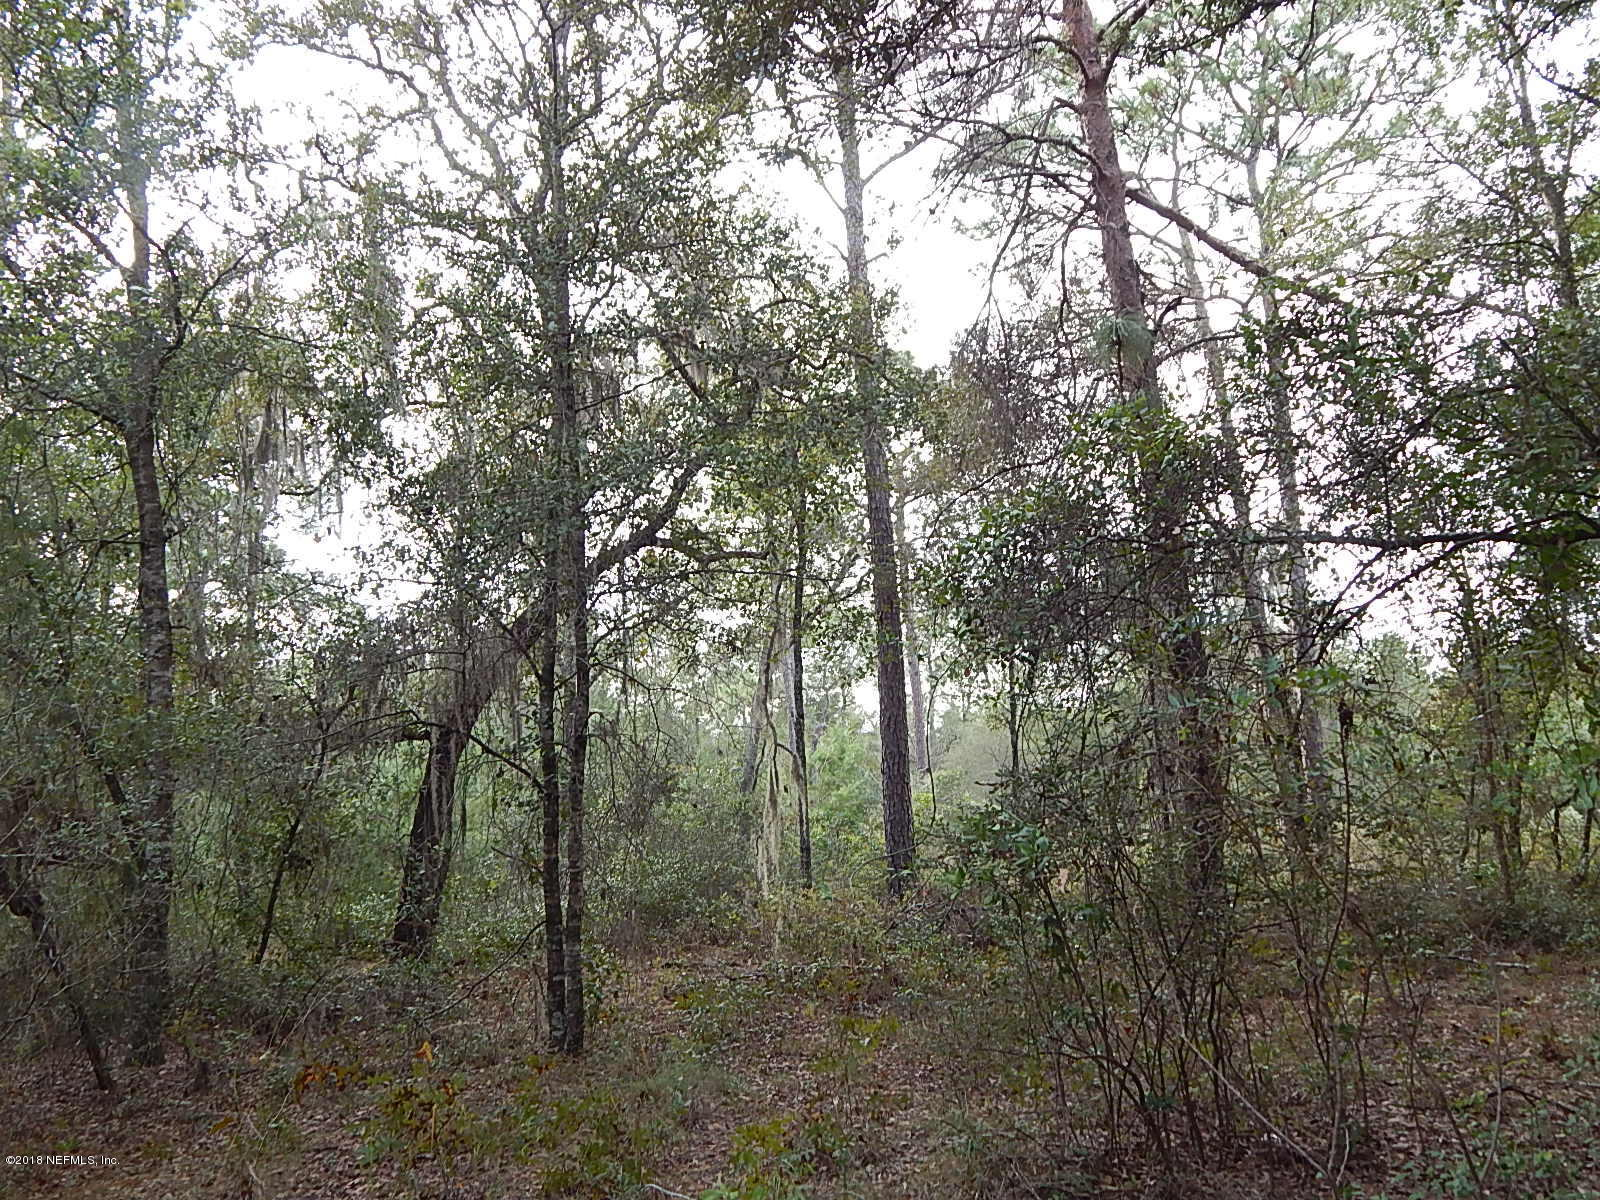 0 COUNTY ROAD 219, MELROSE, FLORIDA 32666, ,Vacant land,For sale,COUNTY ROAD 219,965499